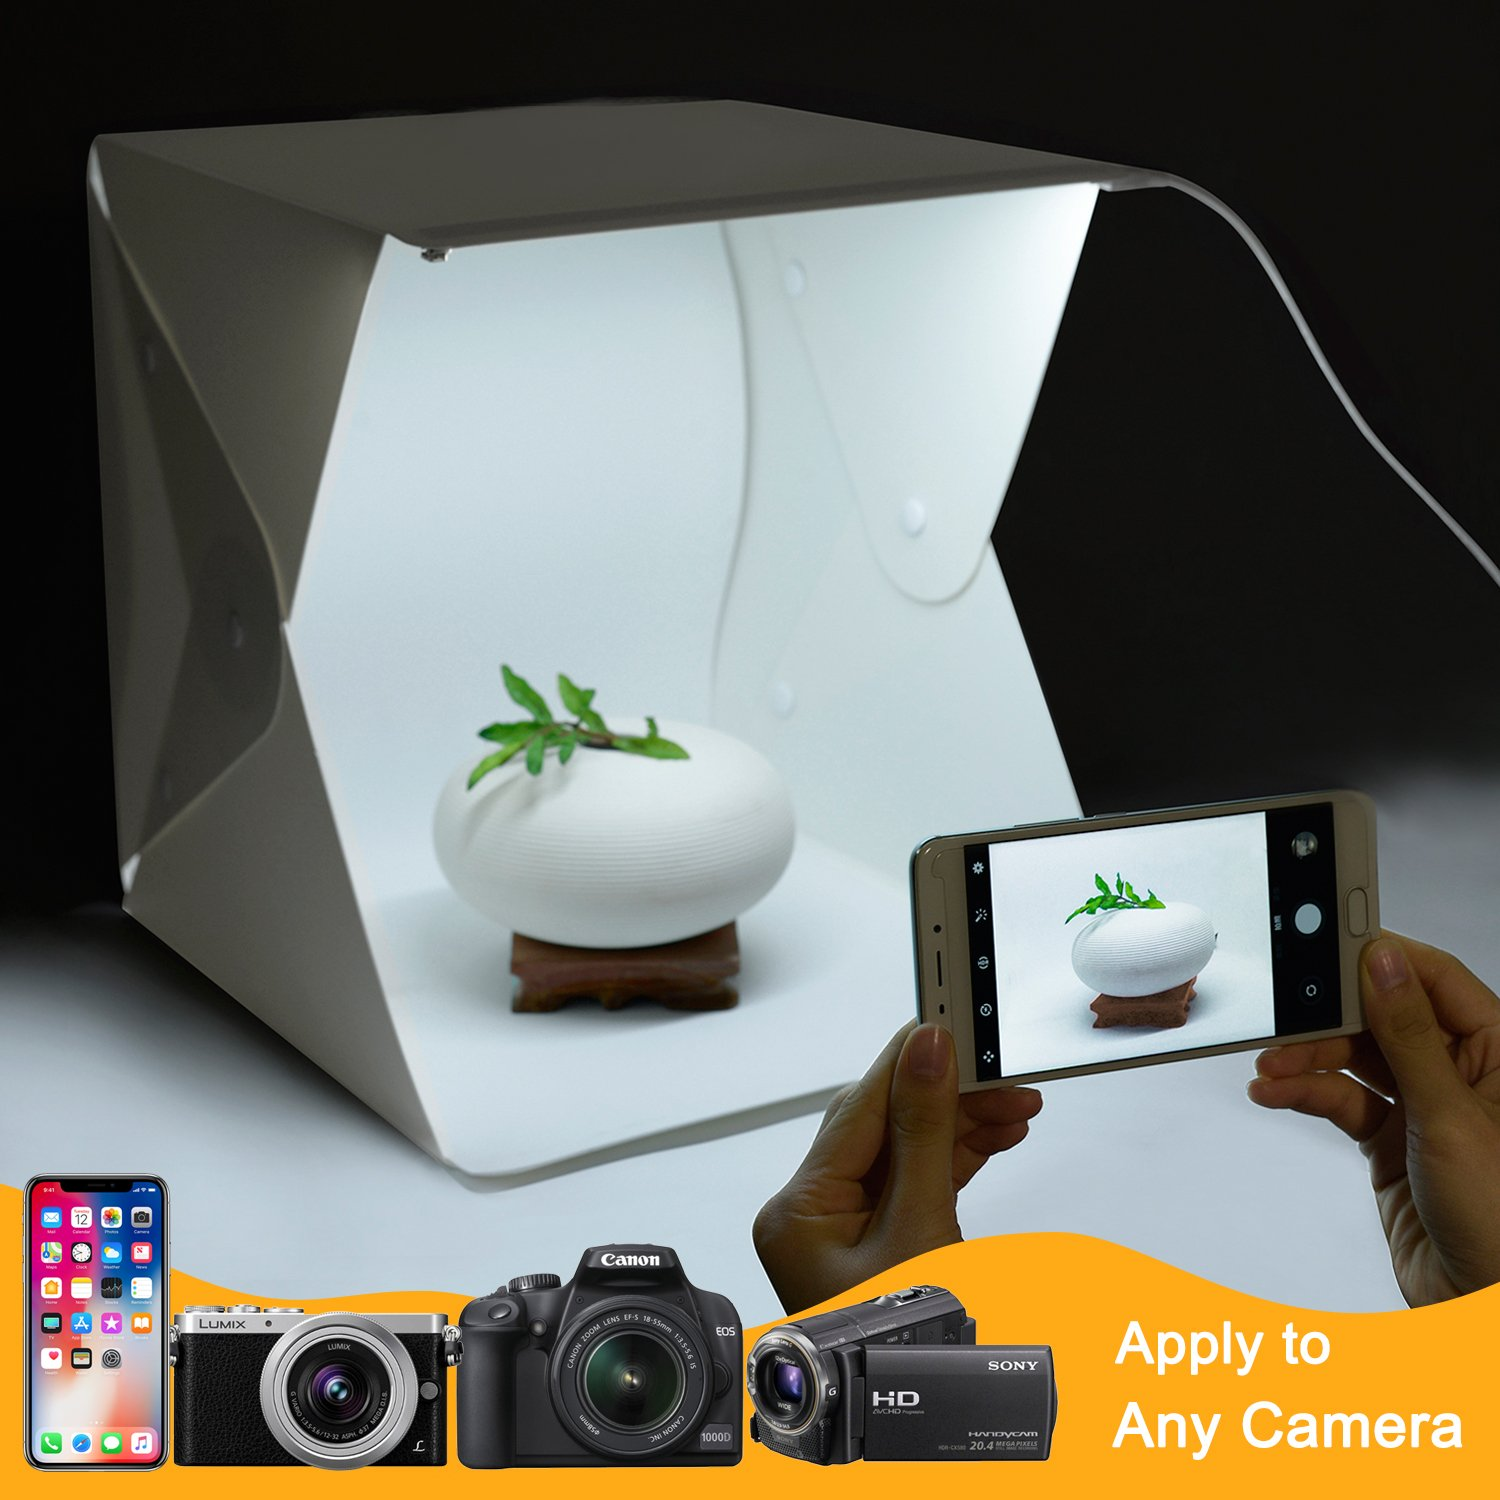 Donwell Portable Photo Studio Tent Light Box Folding Photography Shooting Kit with Adjustable LED Lights and 6 Colors Background New 2018 (Size: 9.8'' x 9.5'' x 9'') by DONWELL (Image #8)